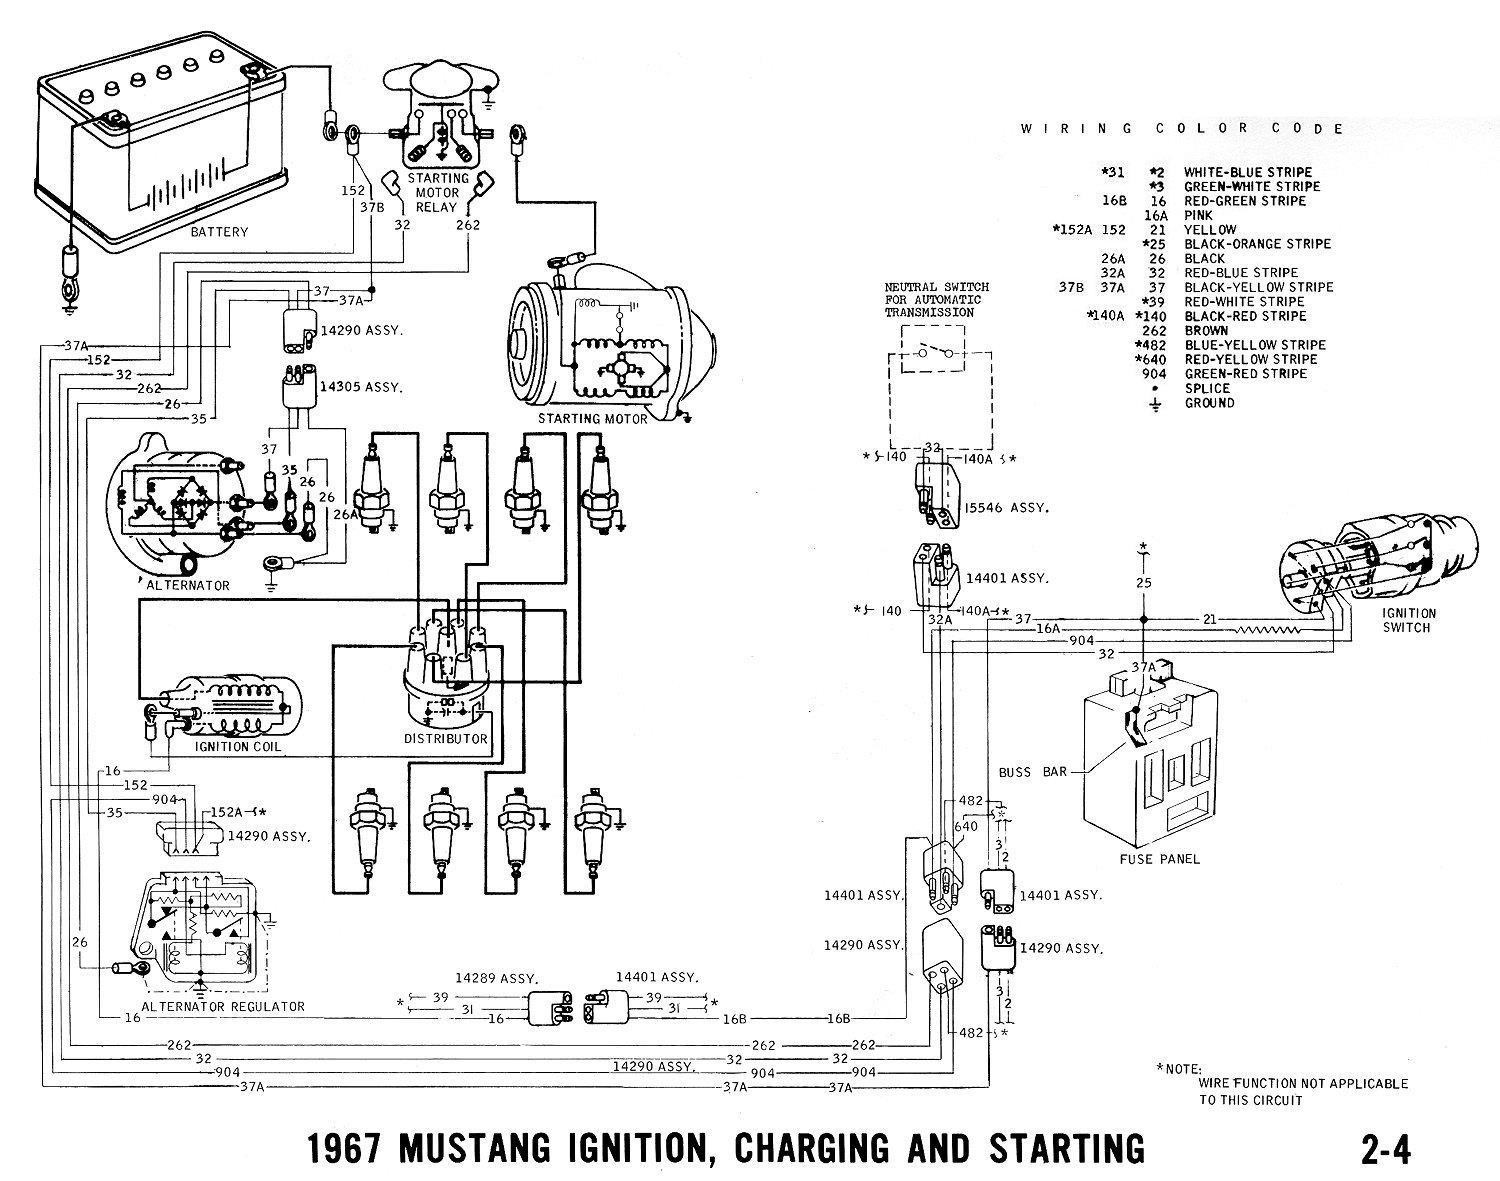 hight resolution of 1968 ford mustang wiring harness diagram wiring diagram option 1968 mustang headlight wiring harness diagram